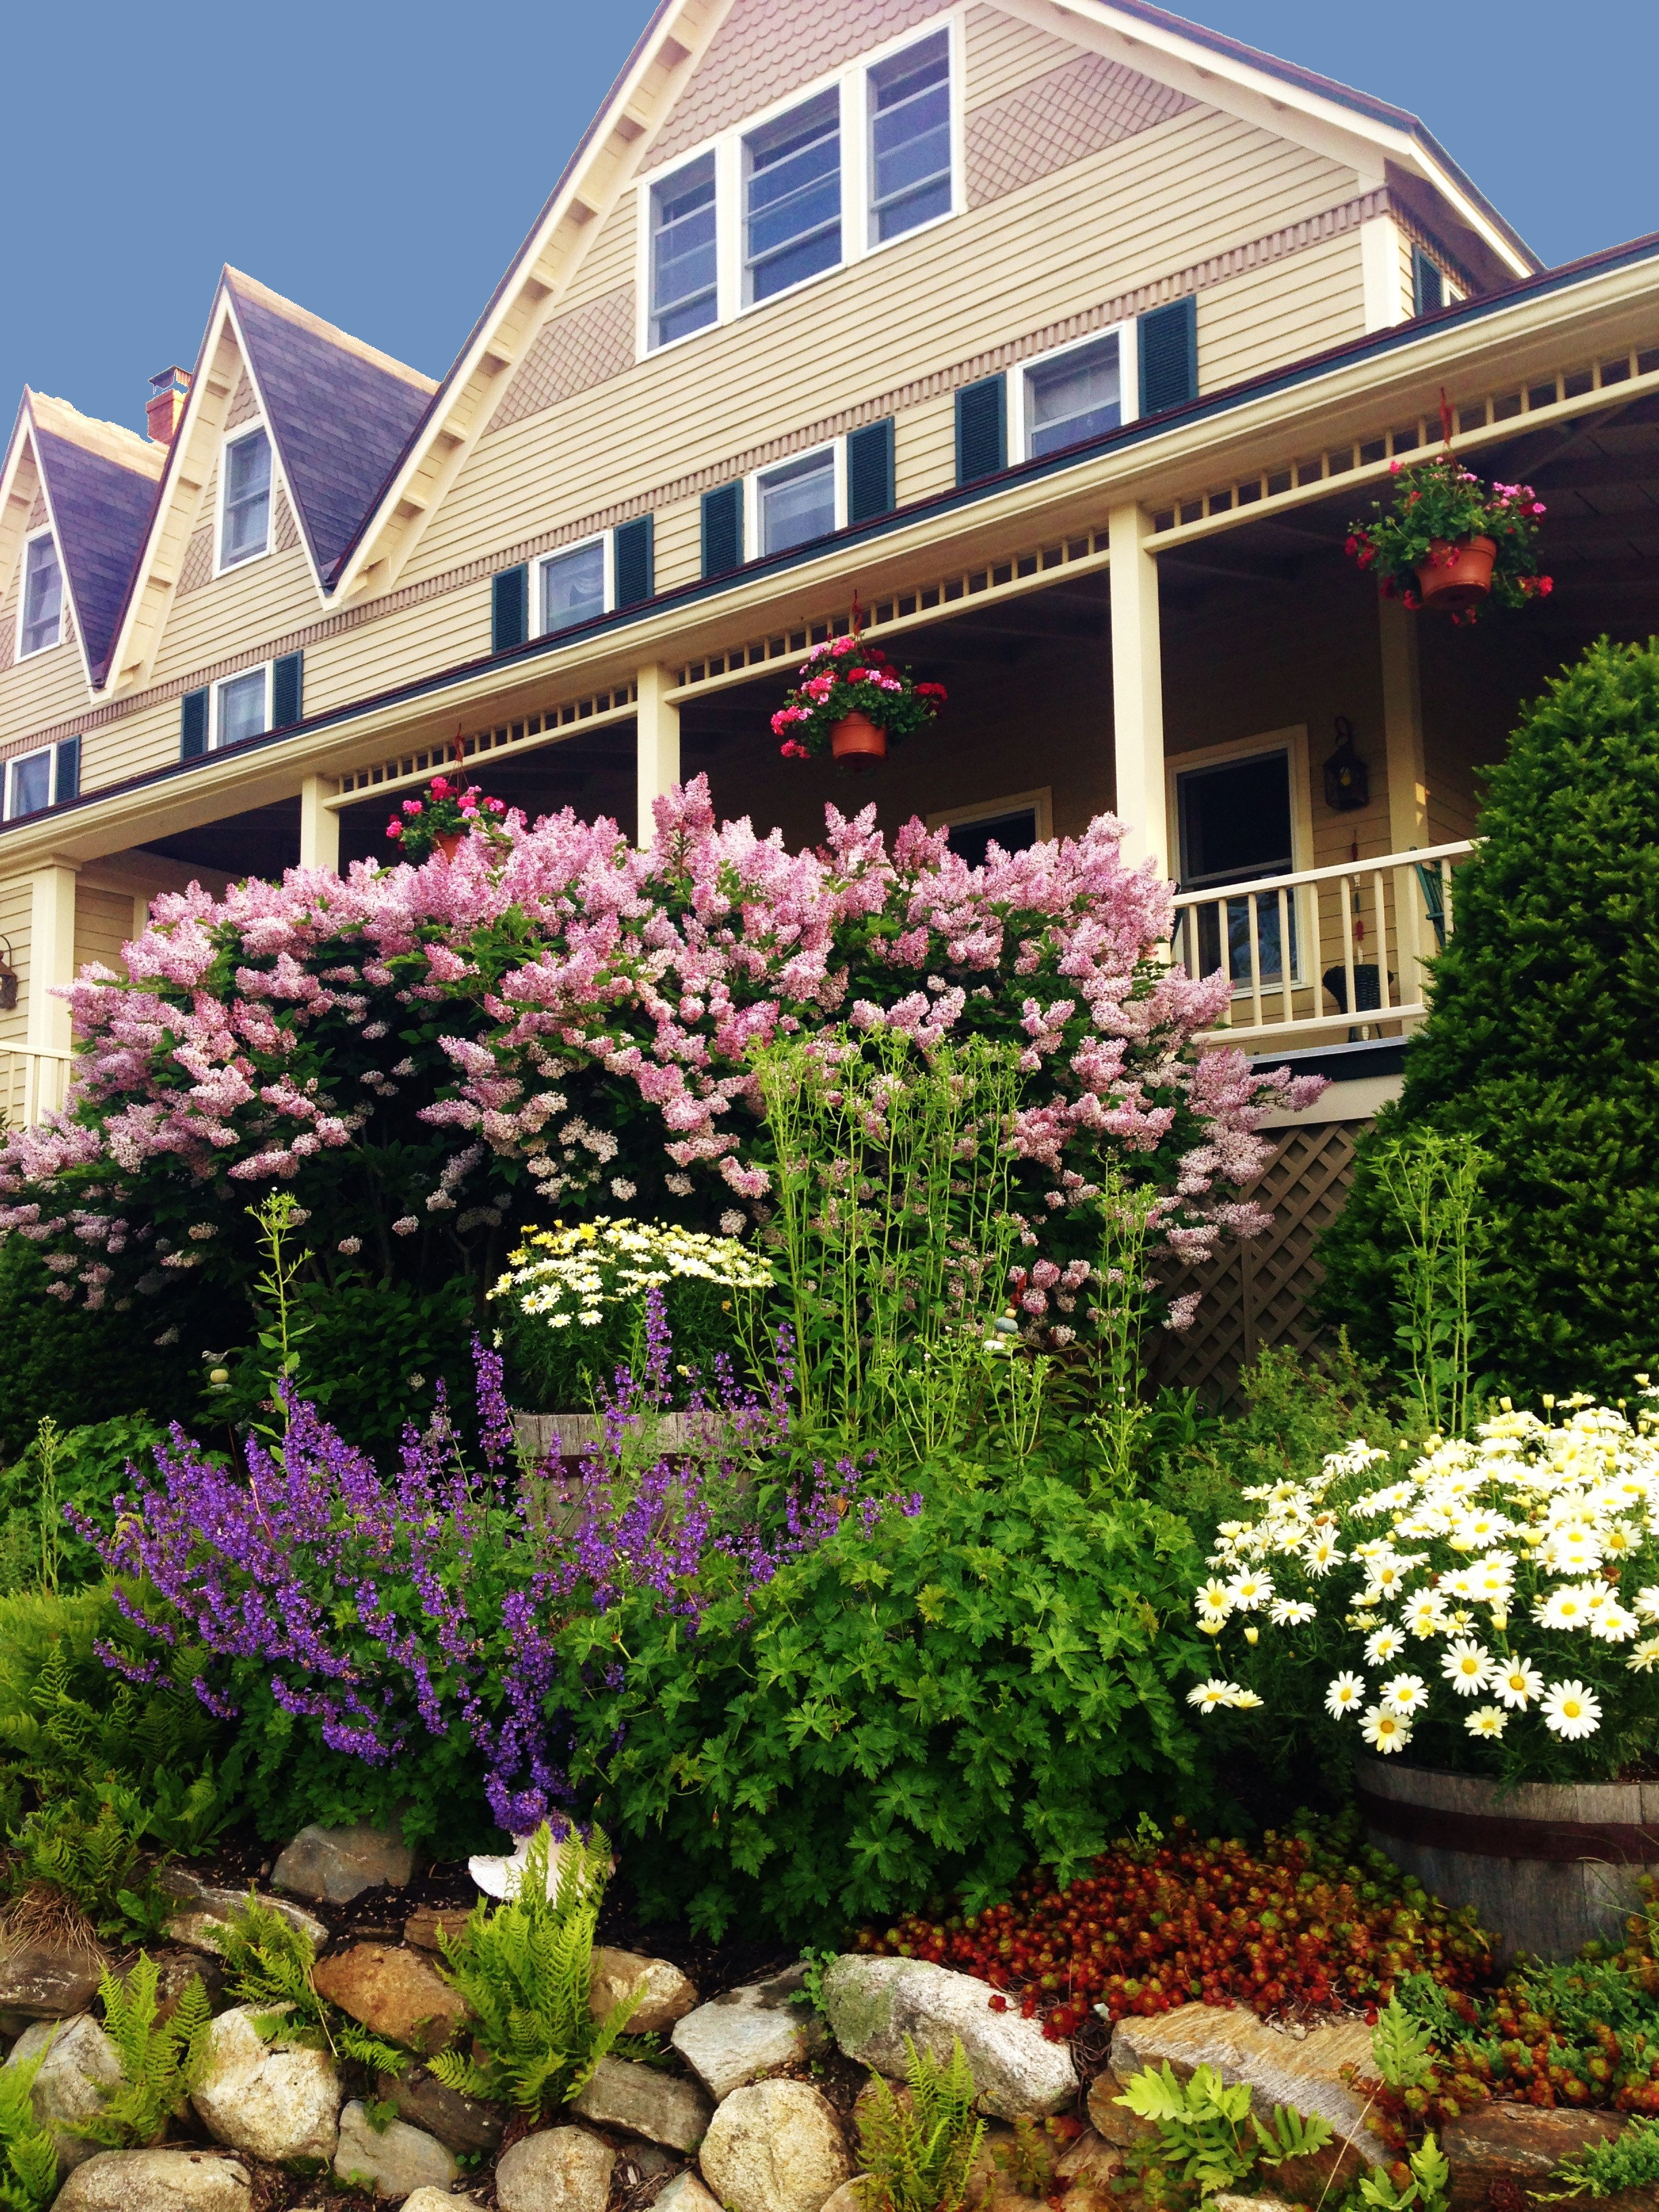 When the lilacs are in bloom it is hard to even smell the salt air!